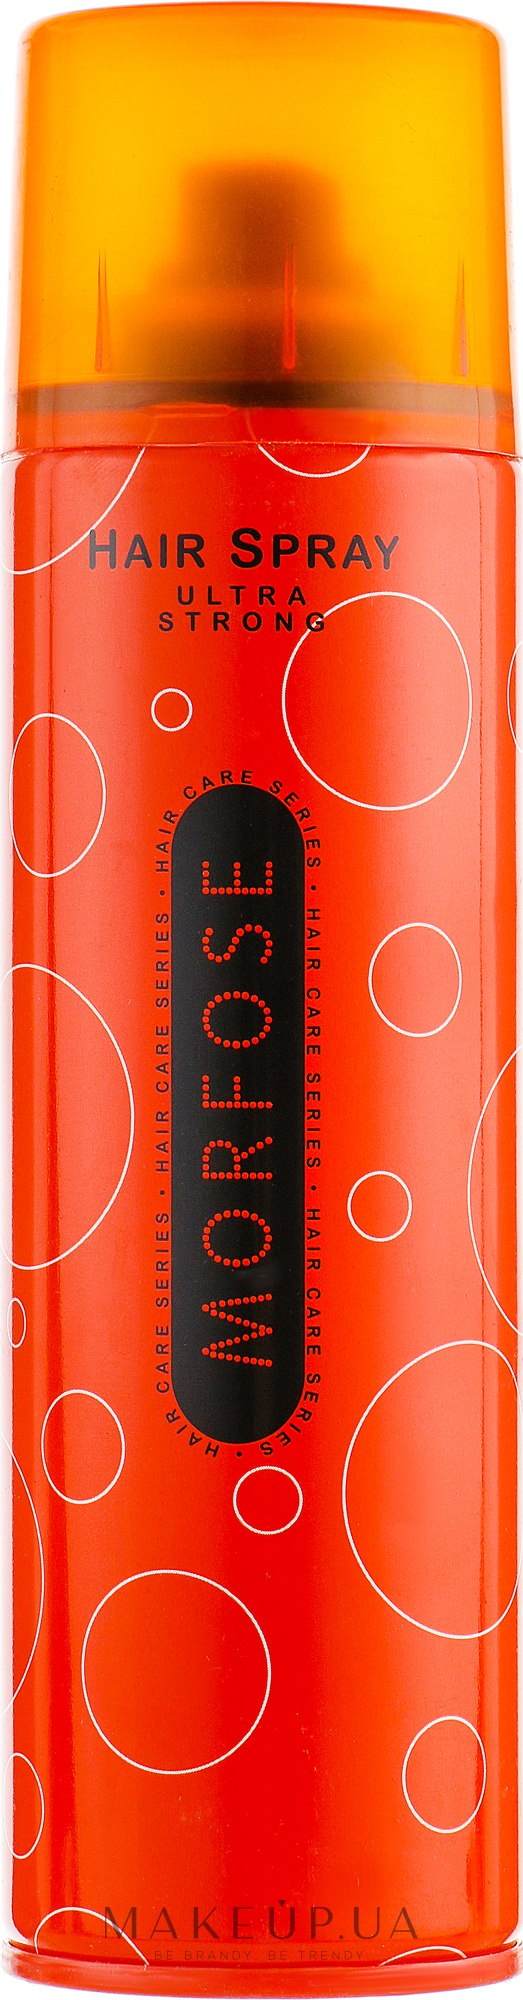 Лак для волос - Morfose Hair Spray Ultra Strong  — фото 200ml